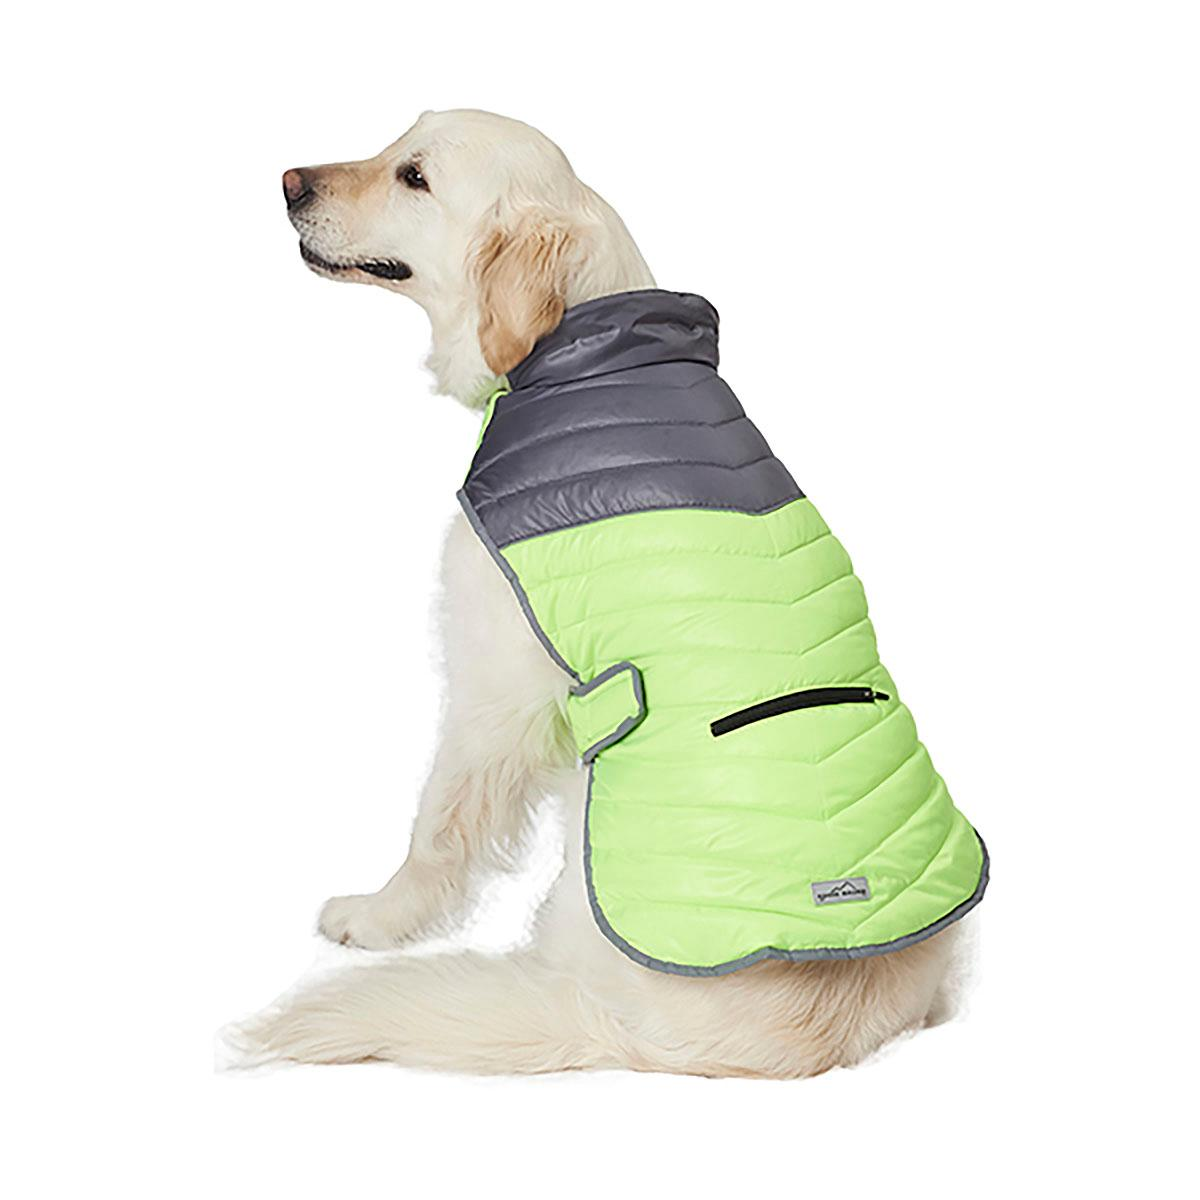 Eddie Bauer Snowfield Performance Dog Vest - Gray/Green